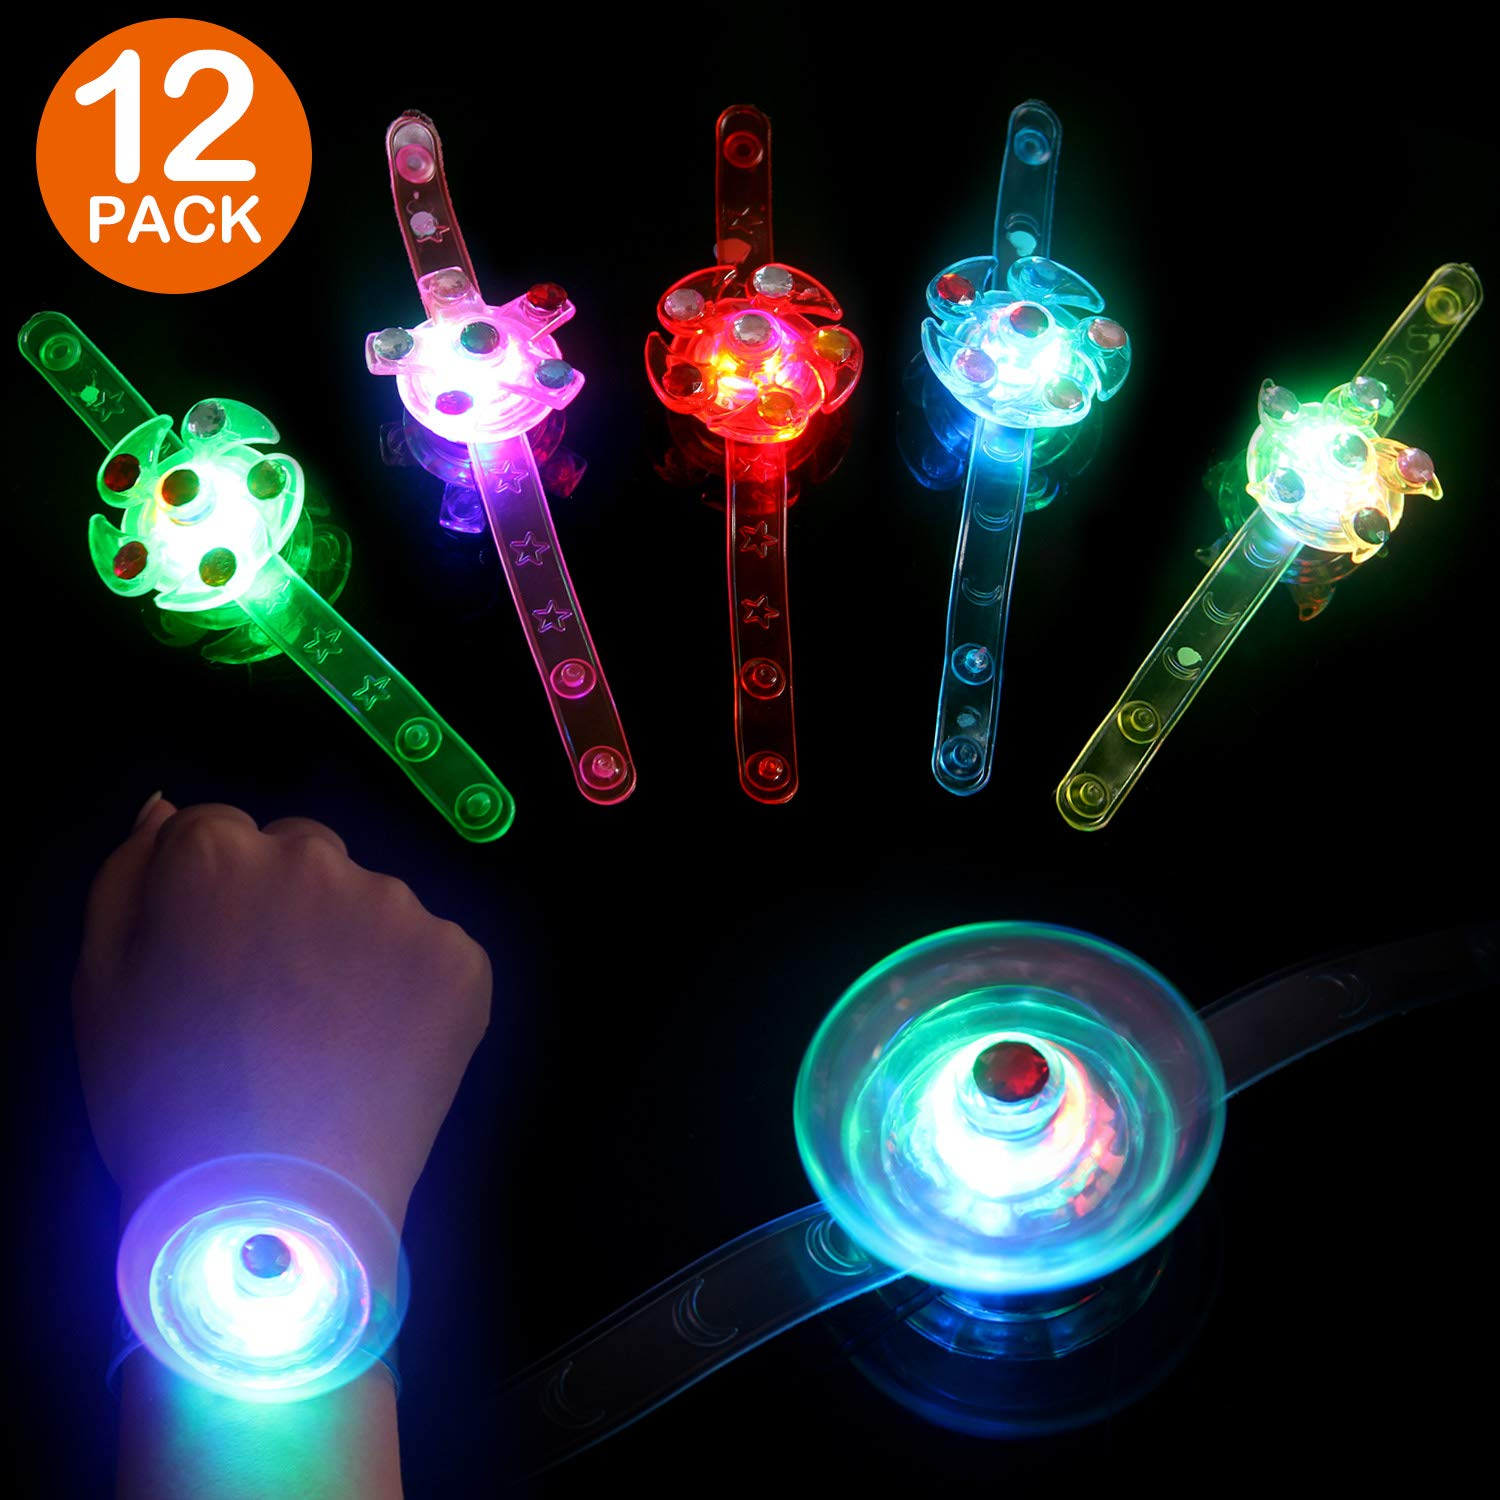 Satkago Glow in The Dark Birthday Party Favors for Kids,12 Pack Halloween Party Favors Light Up Bracelets Toys Hand Spin Stress Relief Anxiety Toys Bulk Fidget Toys Boys Girls by Satkago